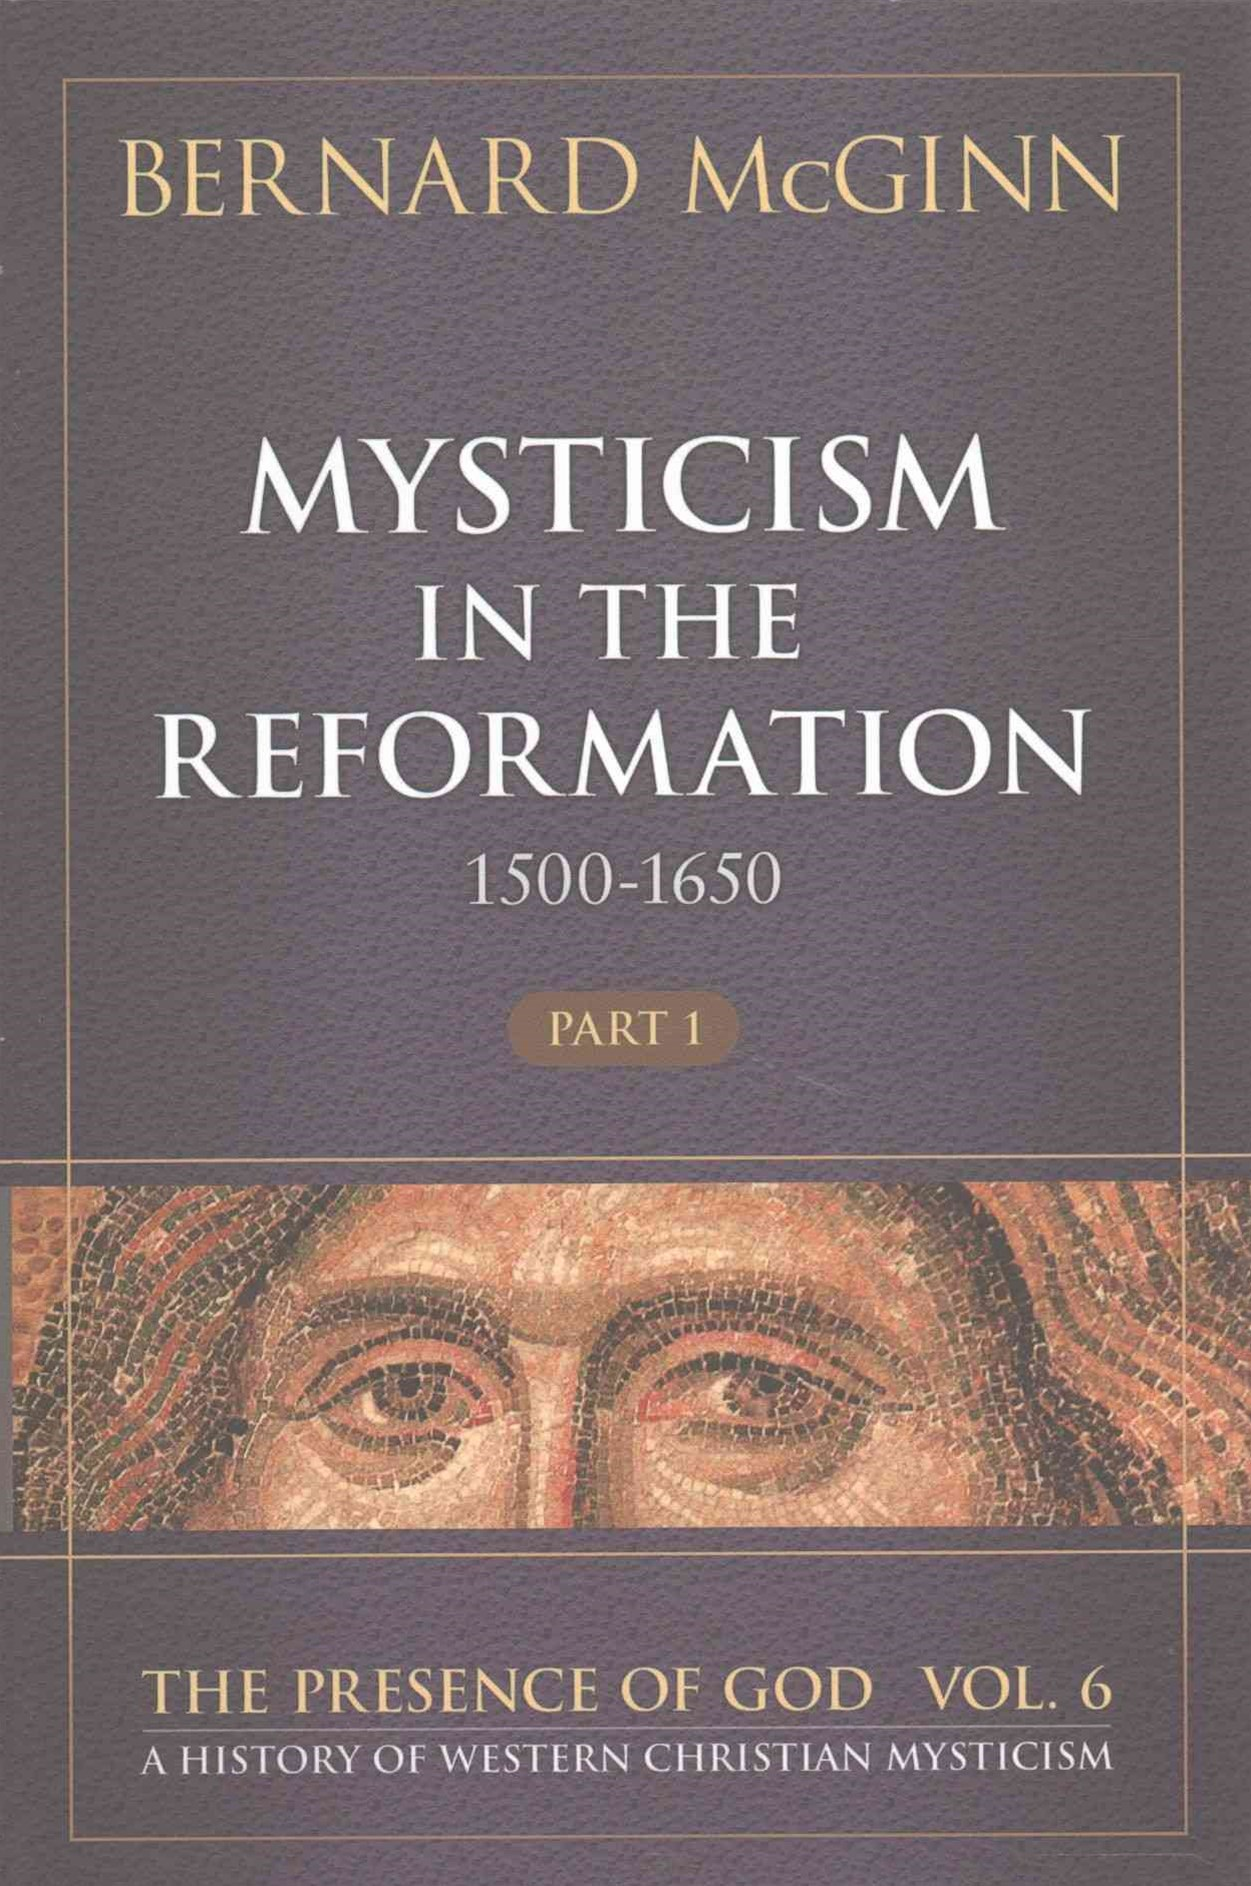 Mysticism and Reformation